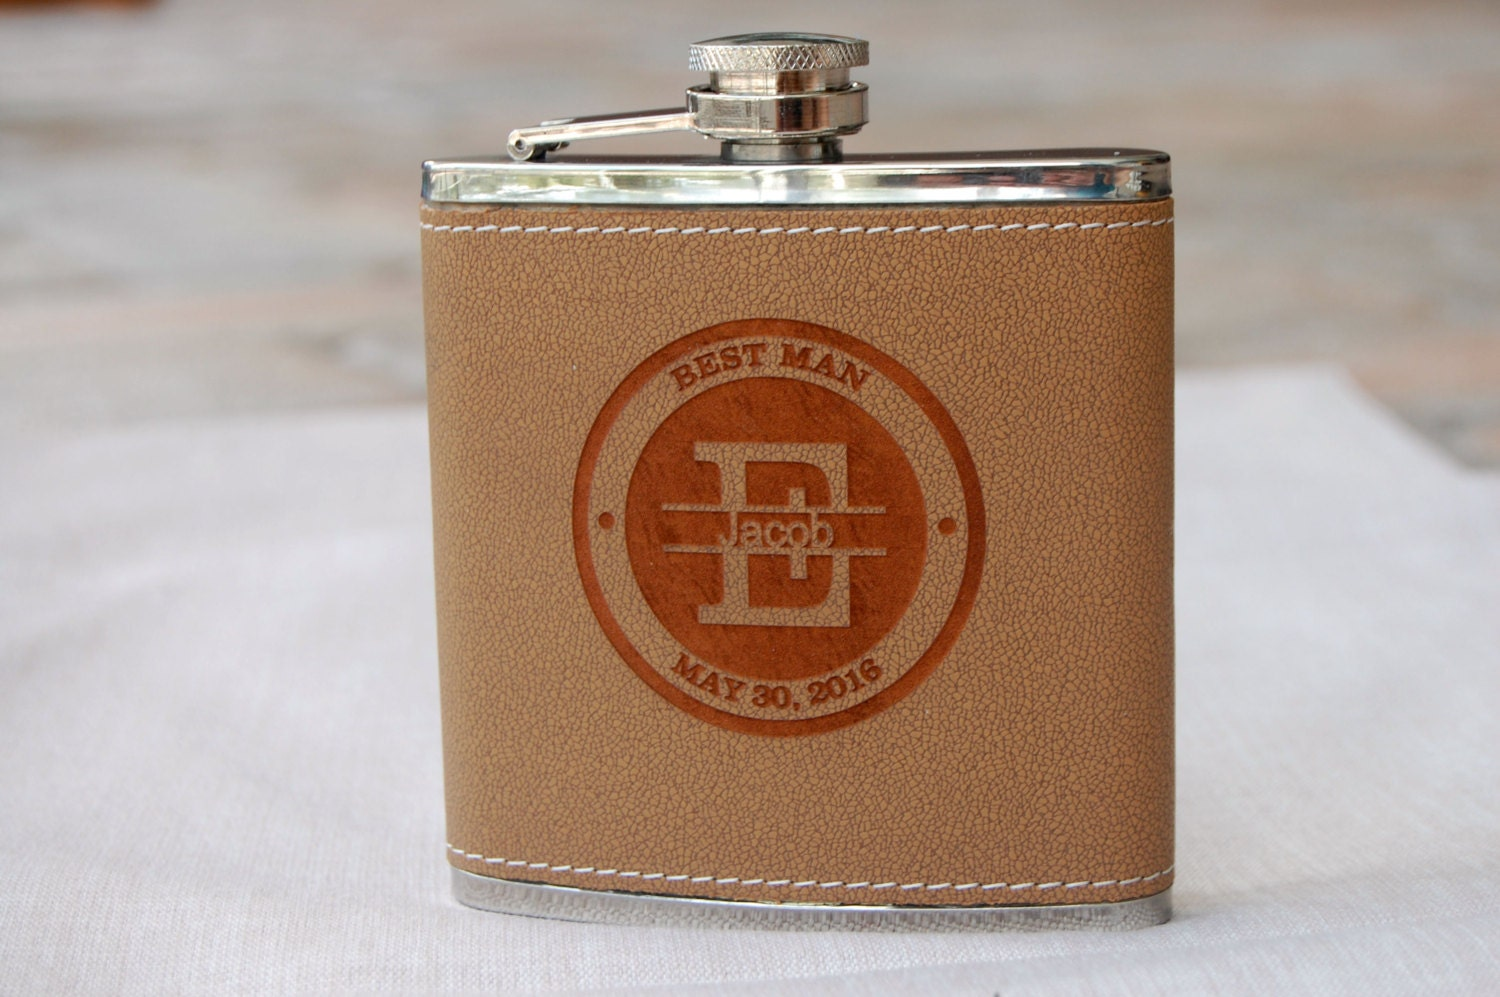 Personalized Wedding Gifts For Groomsmen: Set Of 1 Groomsmen Gift Personalized Flask Brown Leather